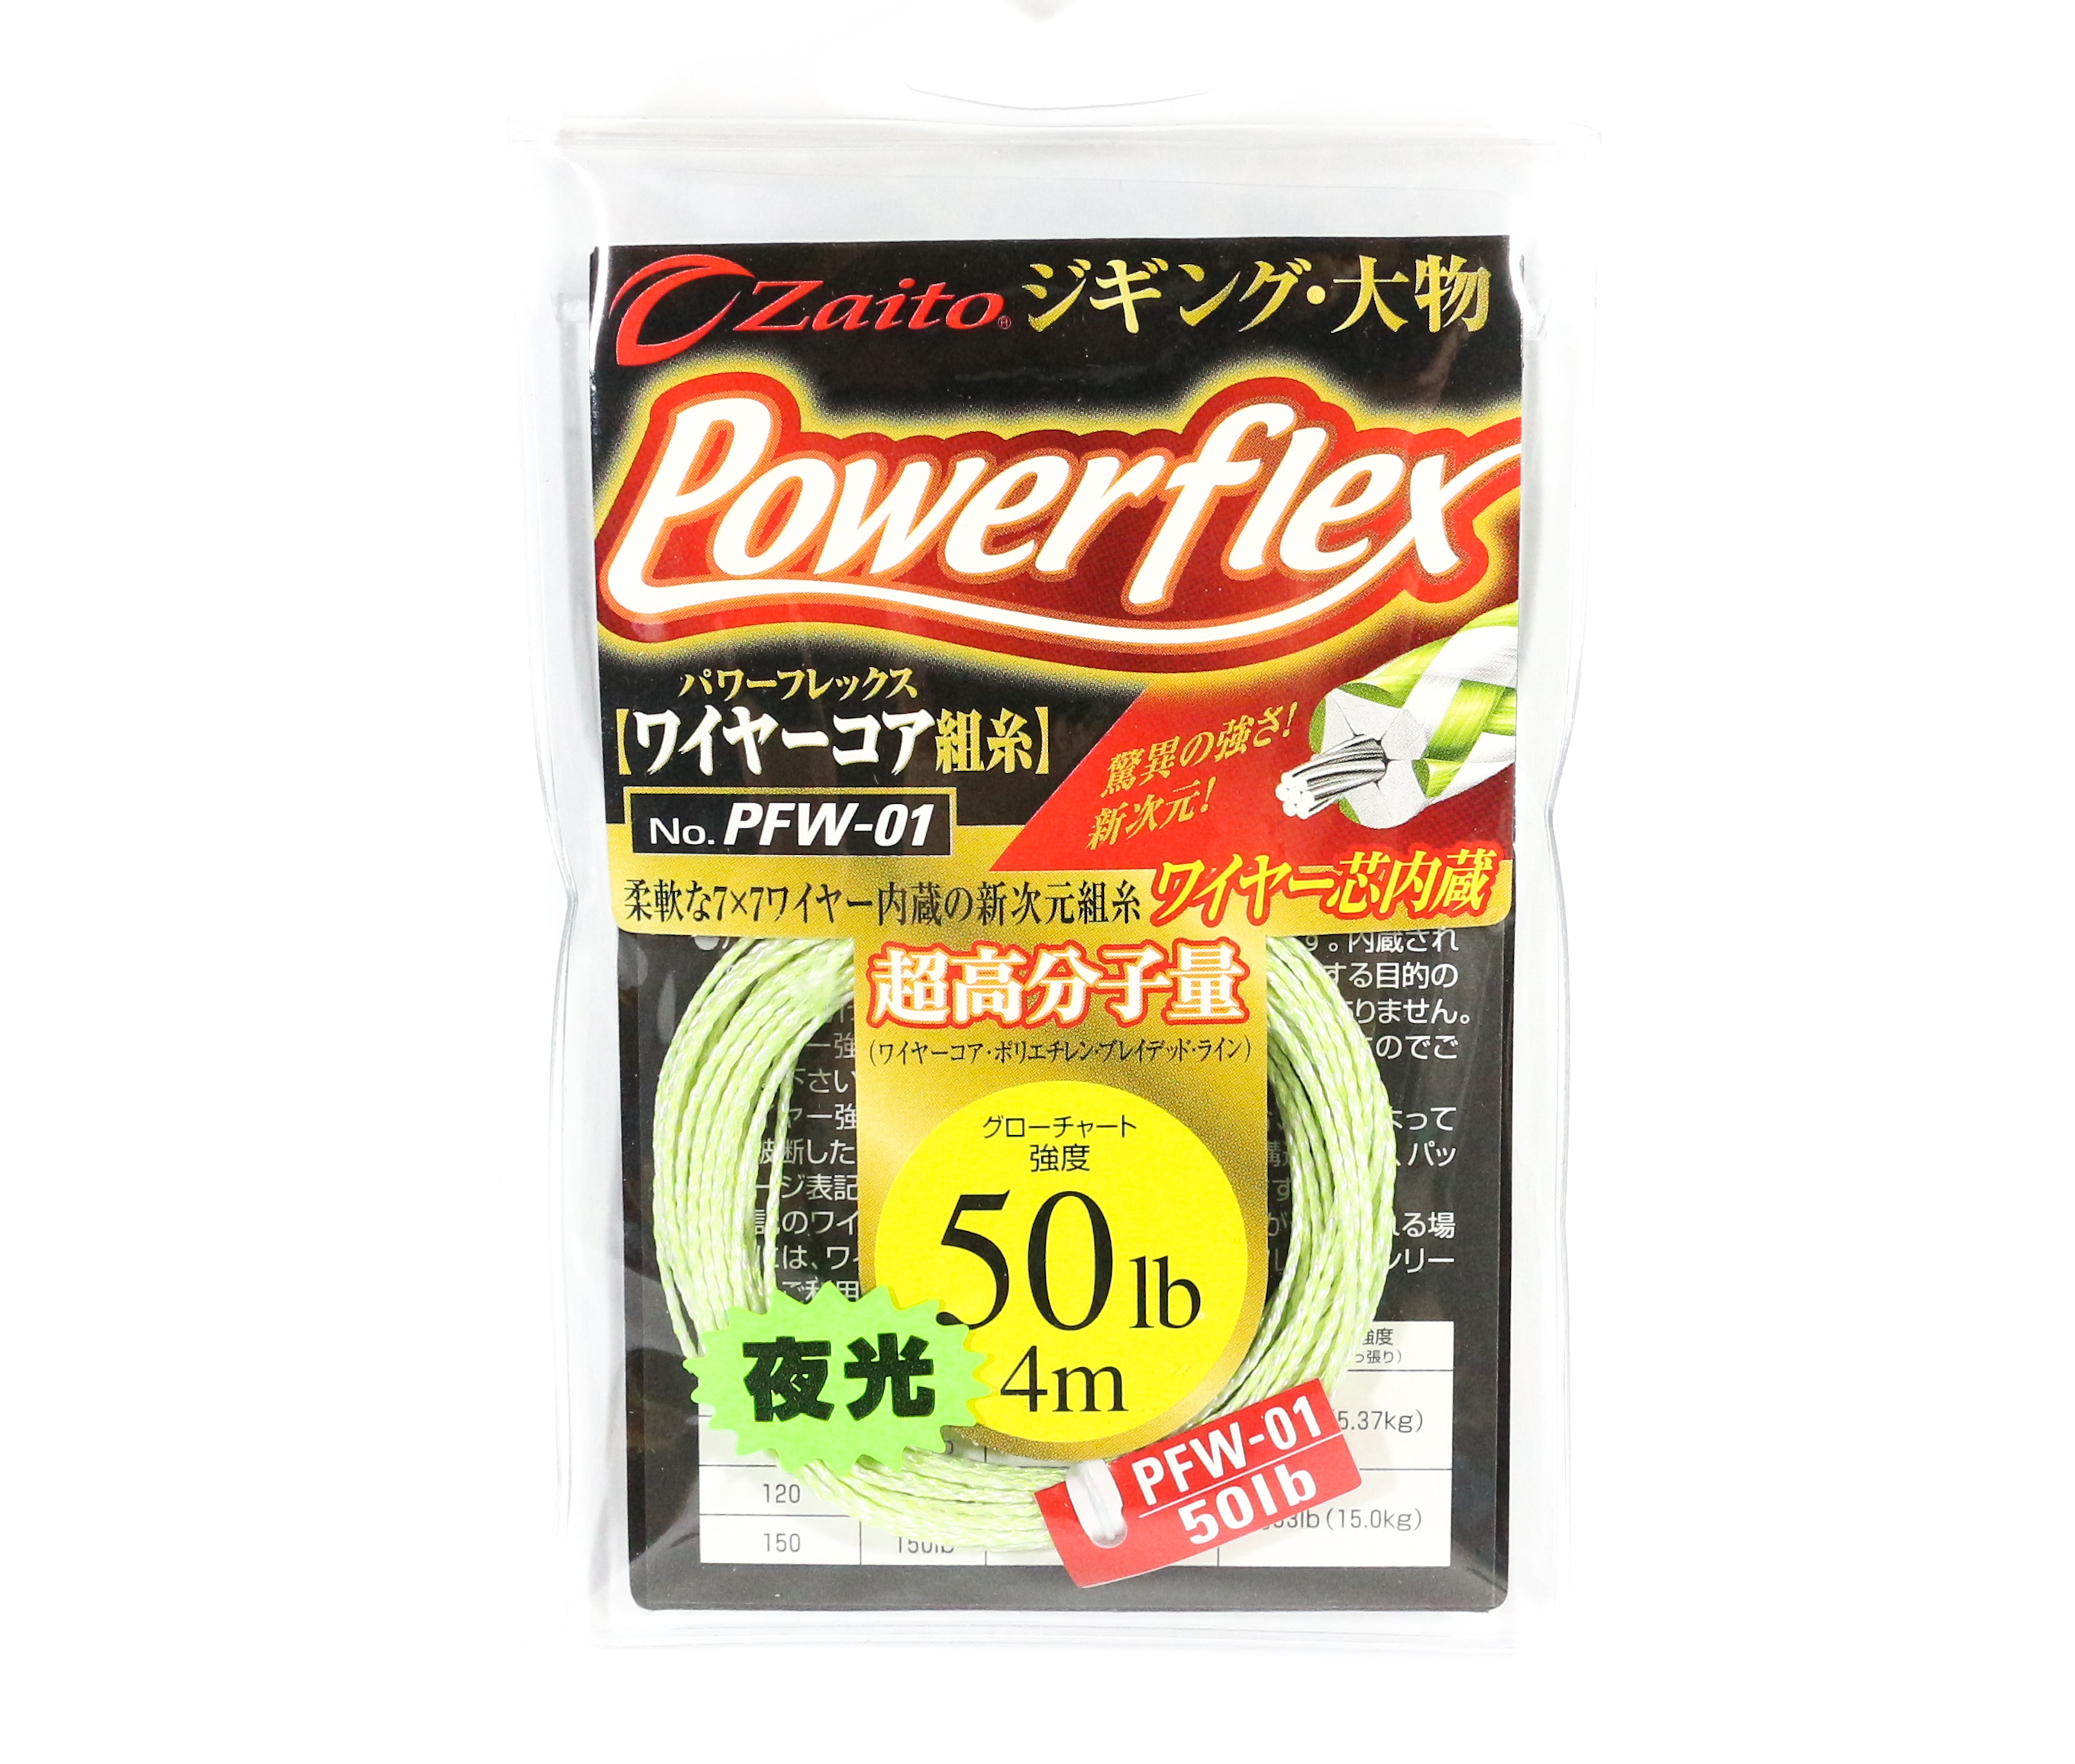 Owner PFW-01 Power Flex Assist Rope with Inner Core Size 50lb (5383)